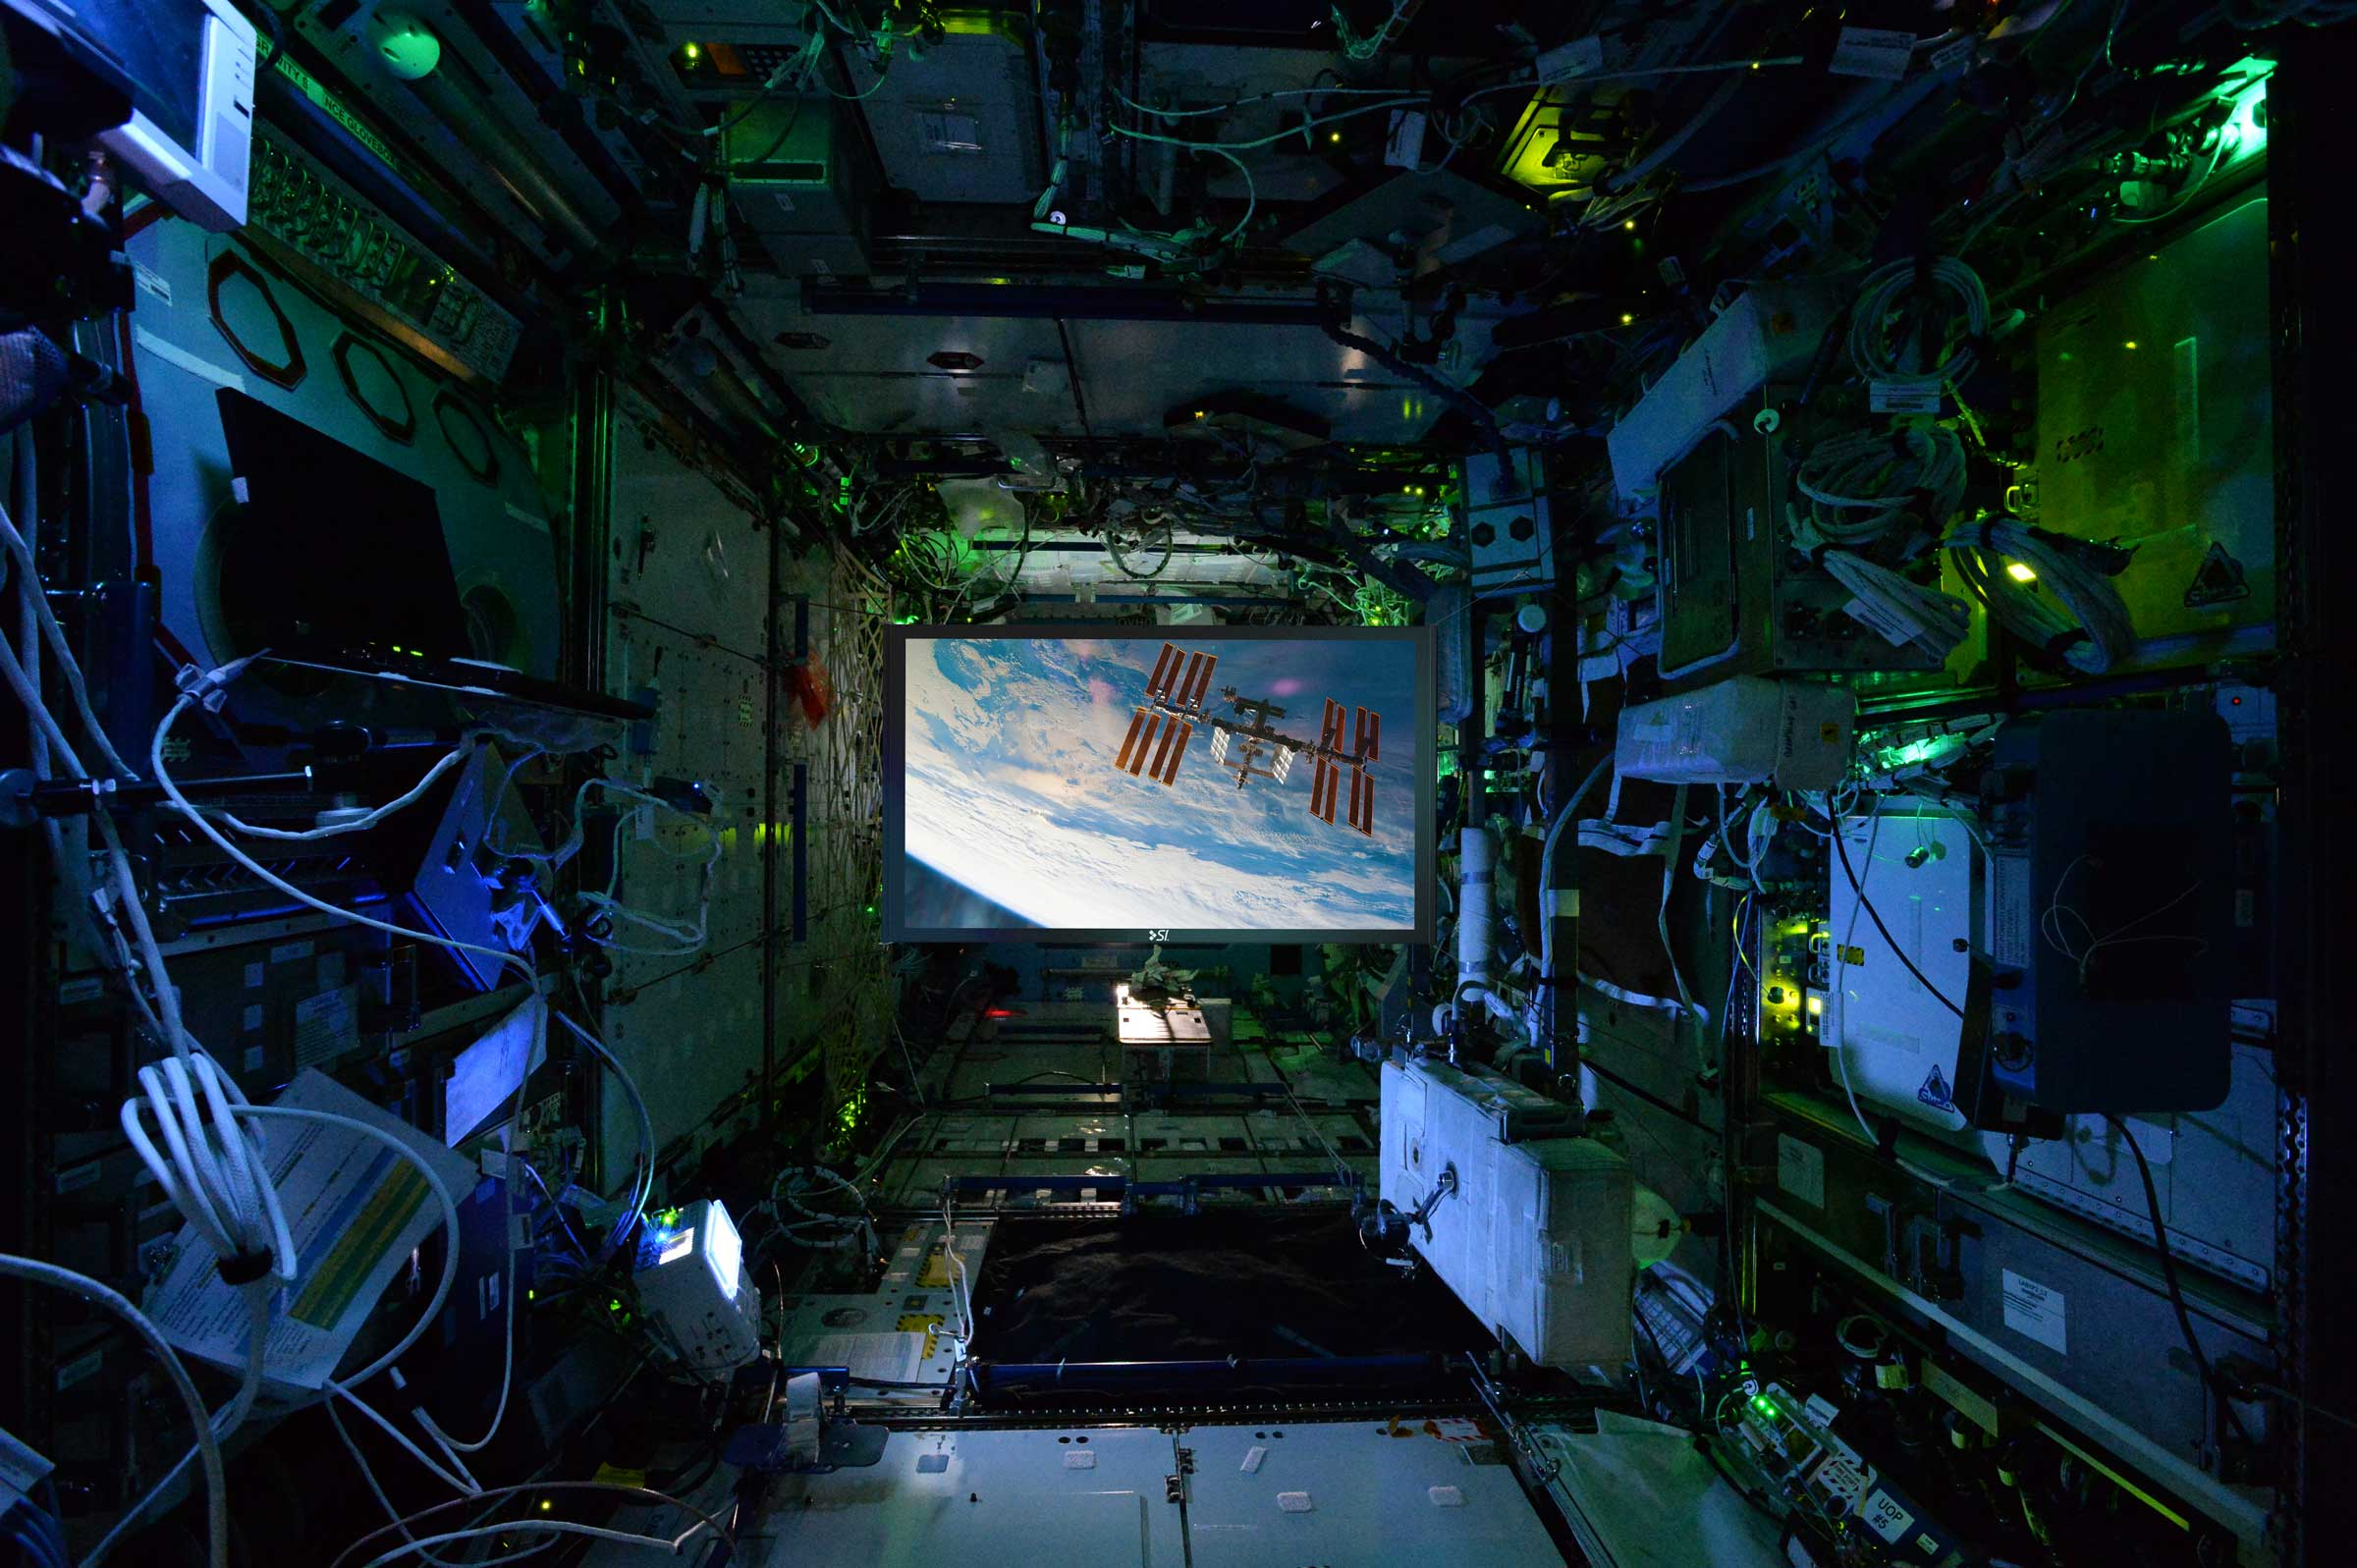 NASA screenin module